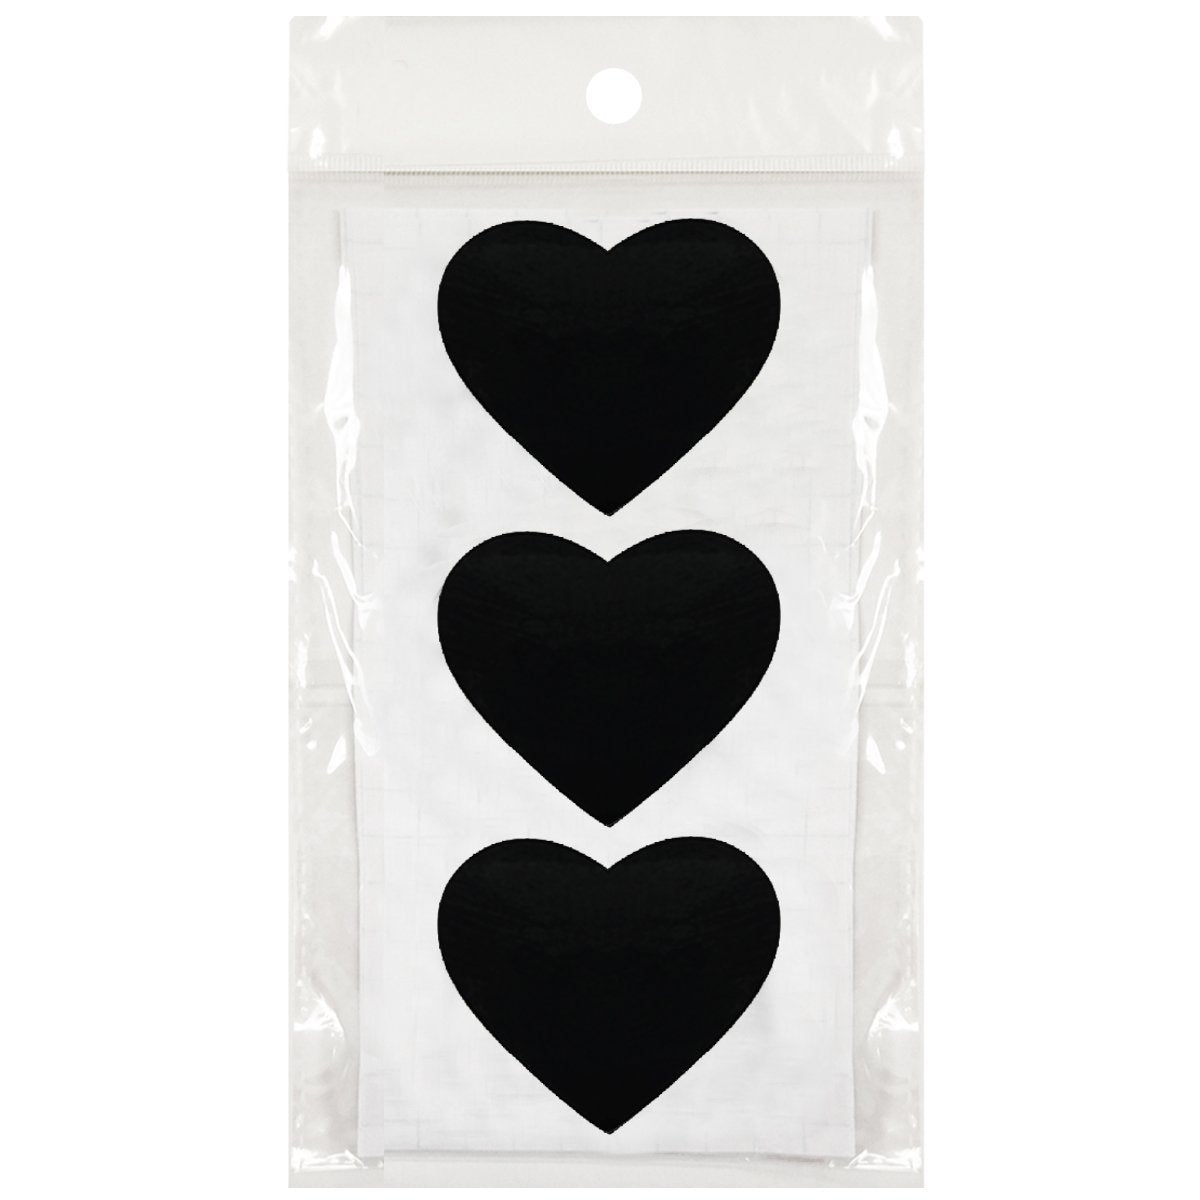 "Set of 8 Chalkboard Stands with Chalkboard Stickers and Chalk Marker, 3"" x 2.25"" Heart"